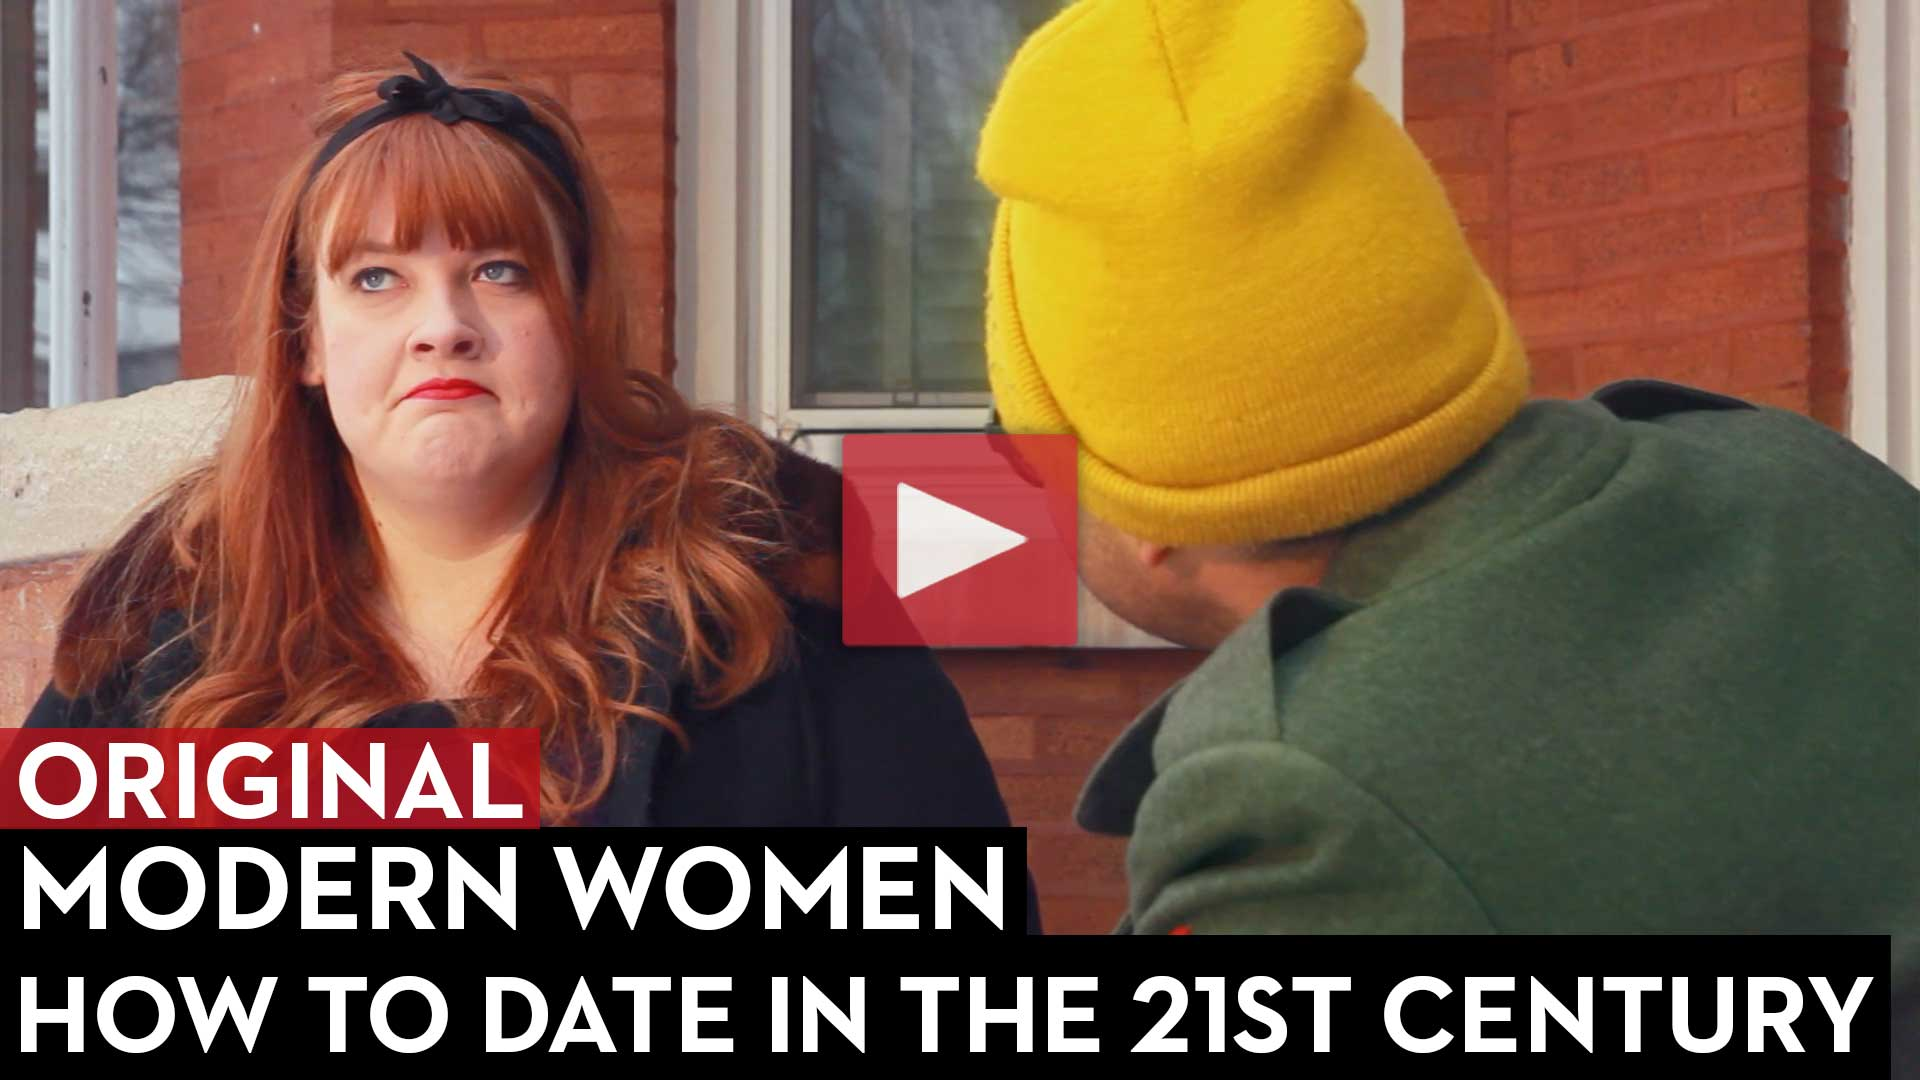 How To Date in the 21st Century: Modern Women Episode 4